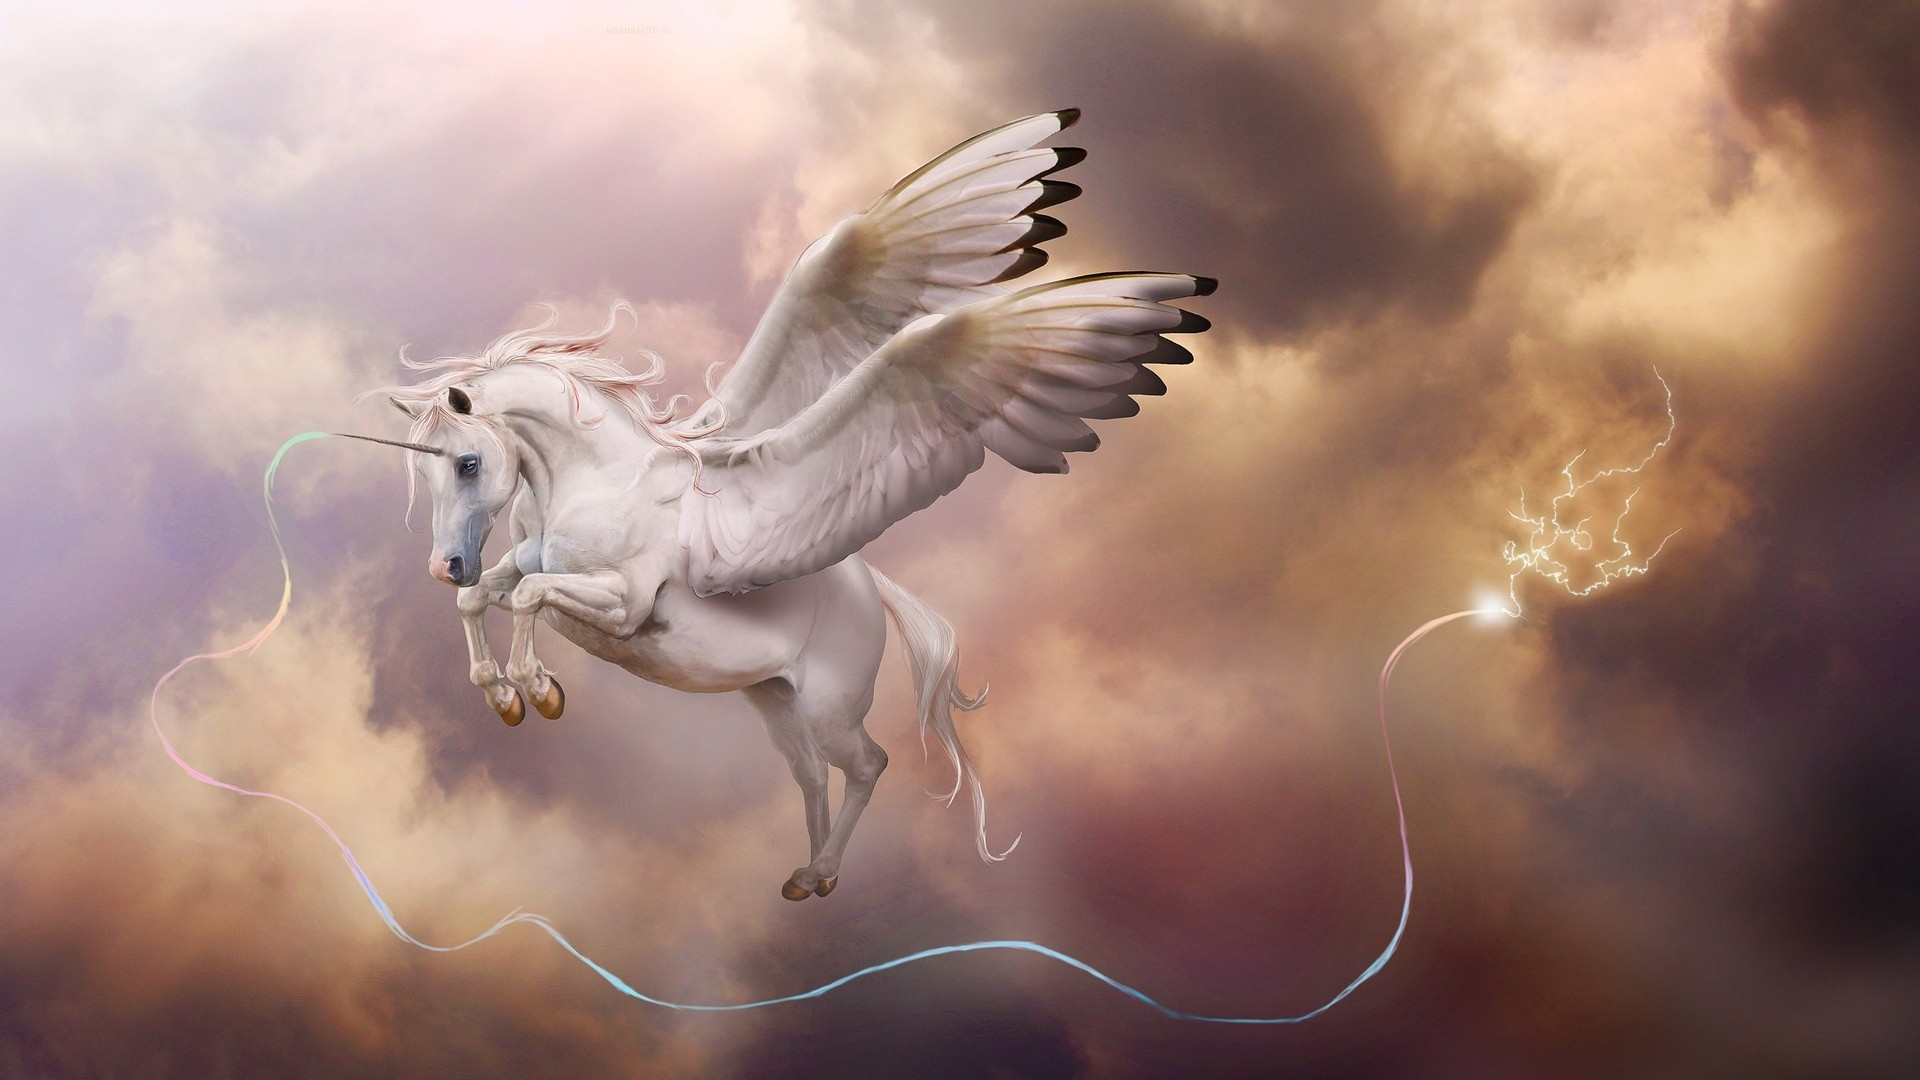 unicorn wallpapers full hd - photo #20